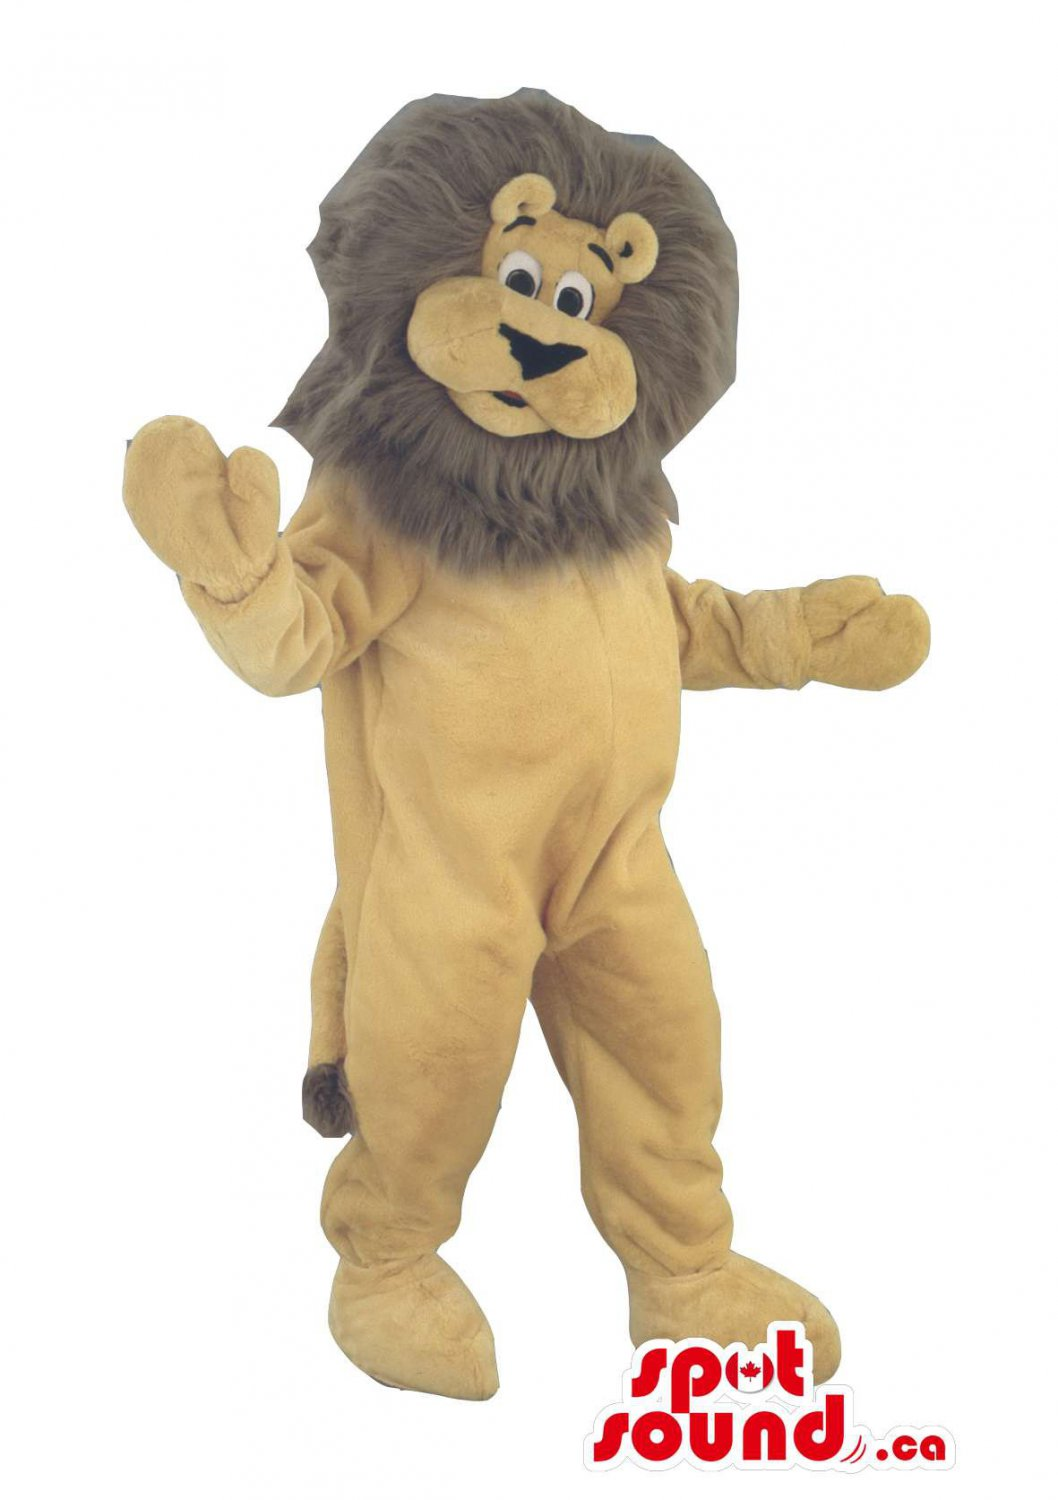 Lion Animal Plush Mascot SpotSound Canada With Brown Hair And A Beige Body